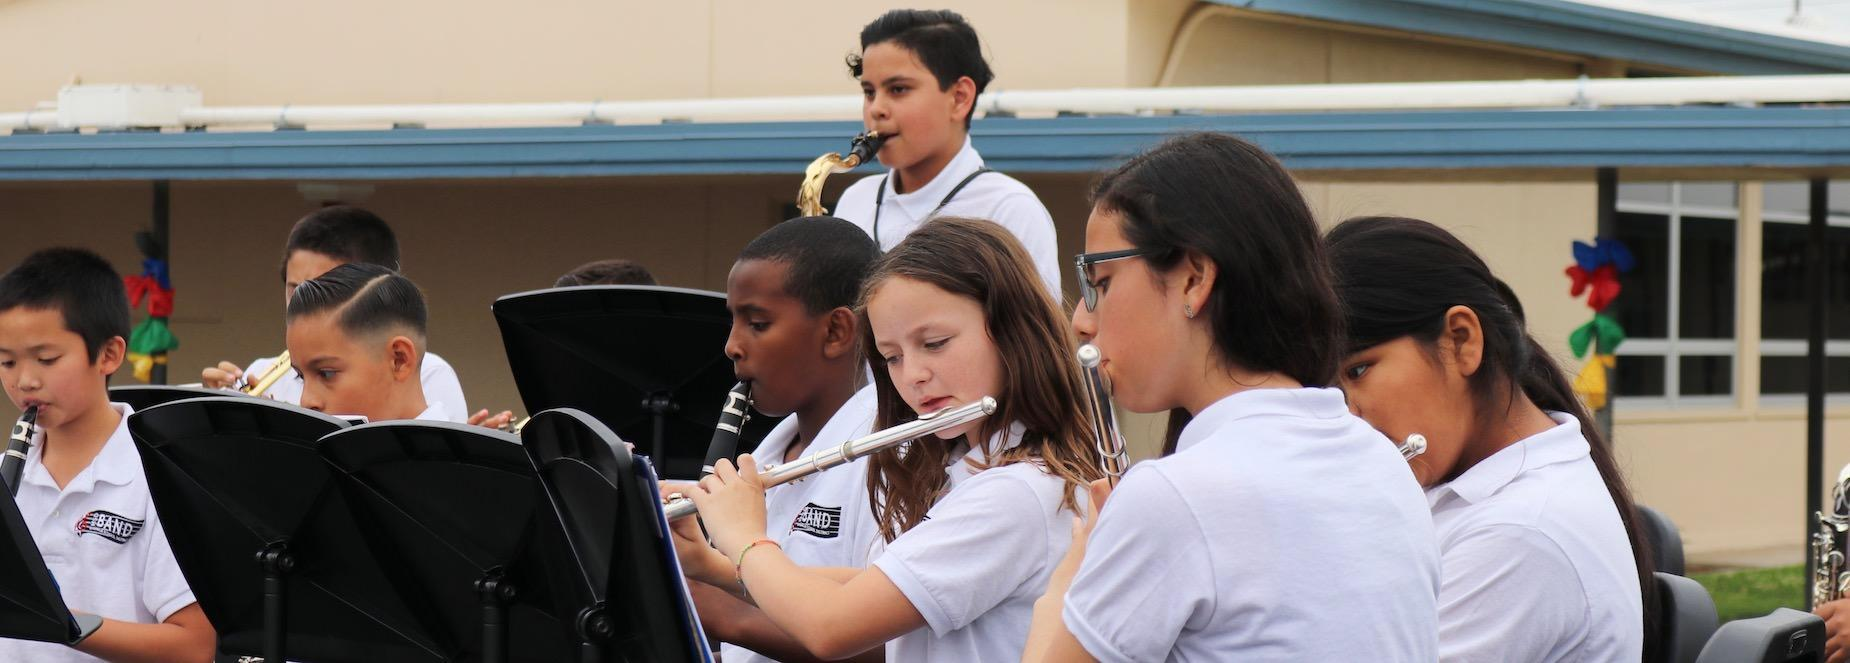 Creativity, Member of the MSD Band playing music